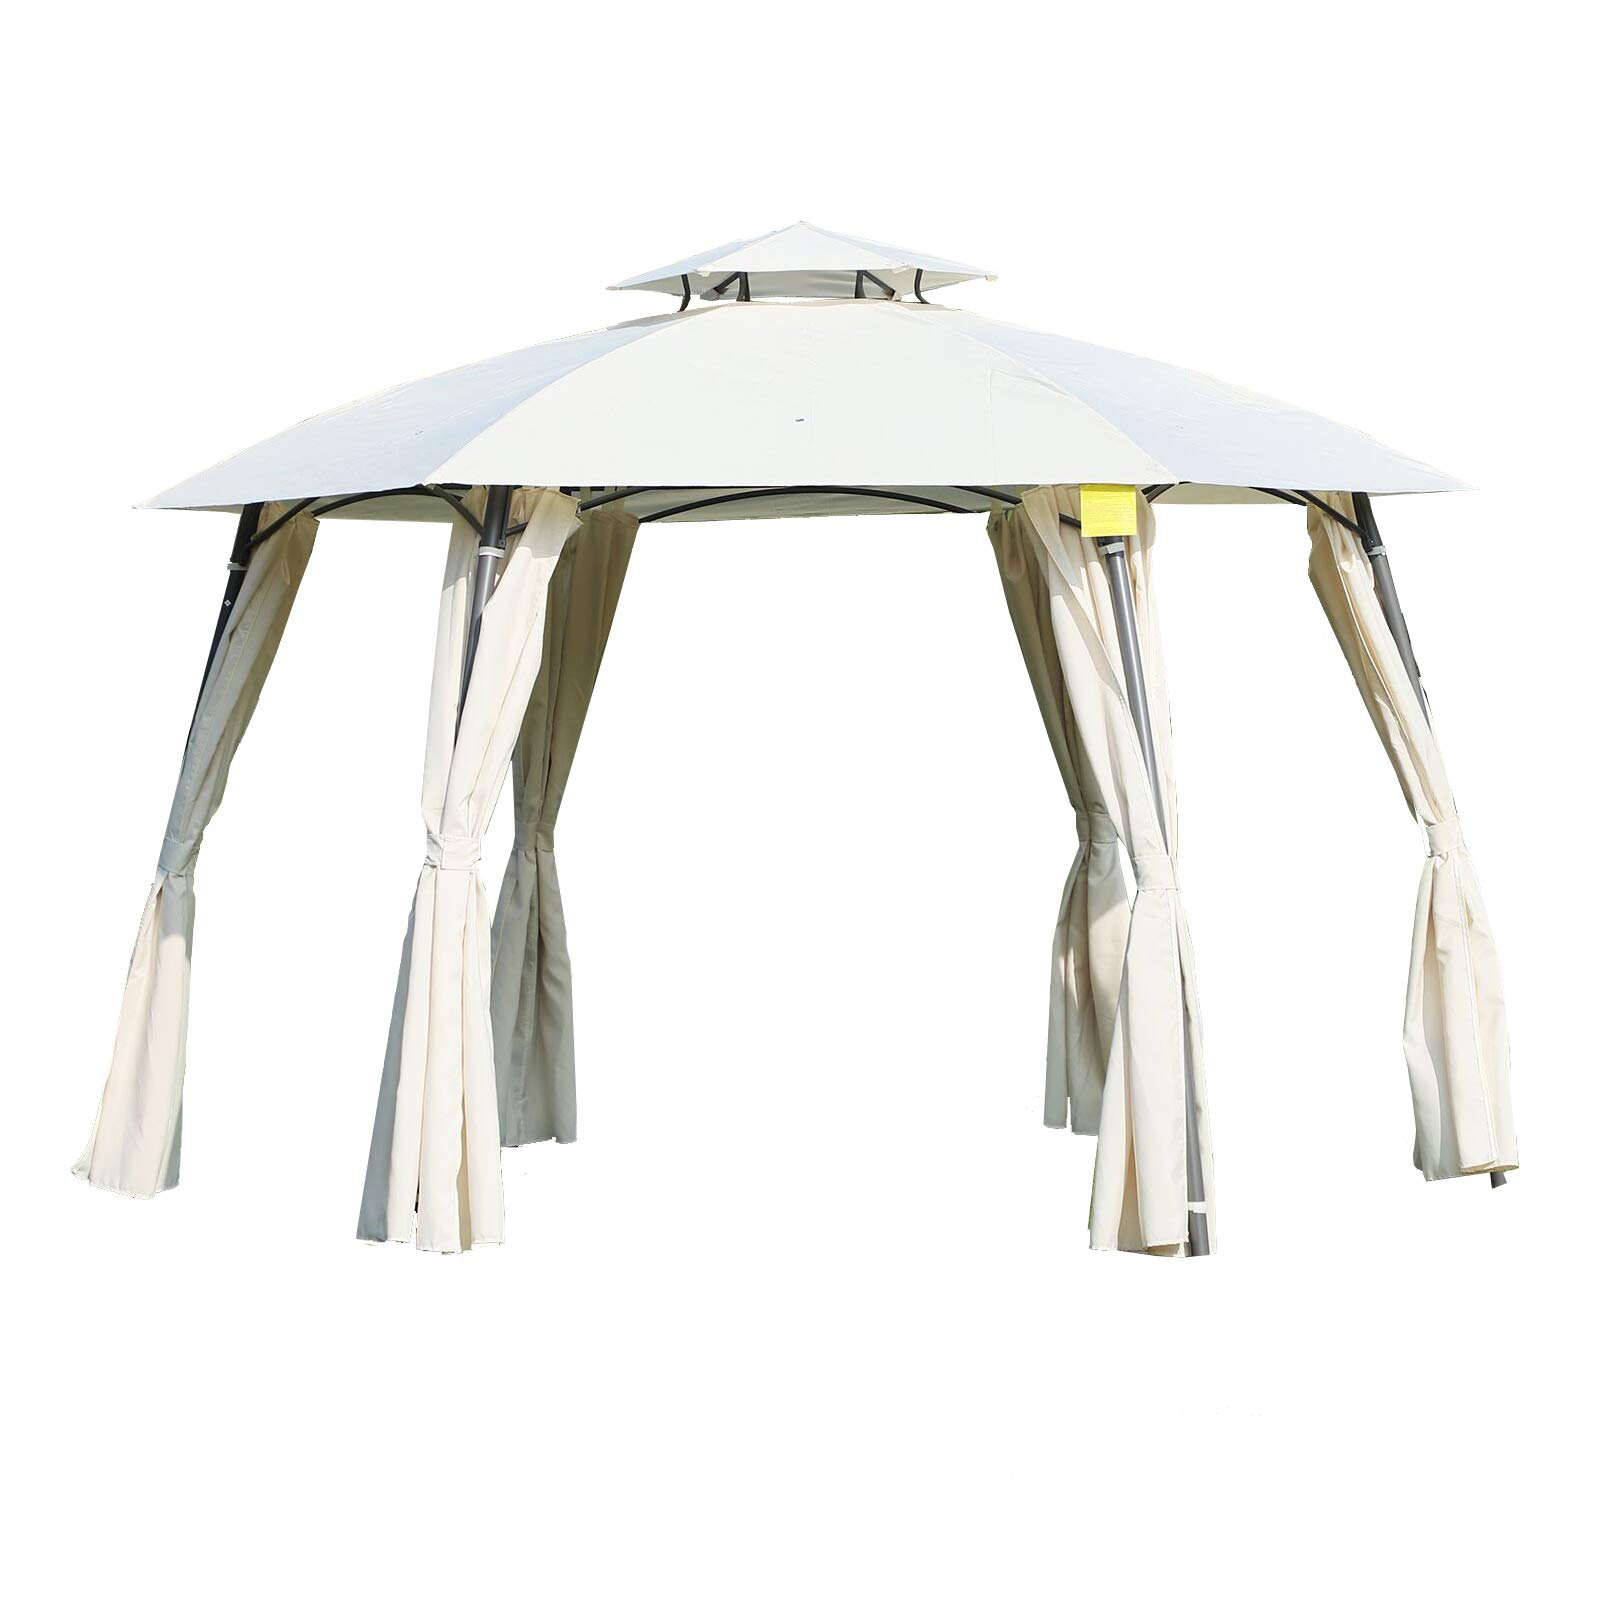 Outsunny 12' x 9' Steel Outdoor Patio Hexagon Gazebo Pavilion Canopy Tent with Curtains - Cream White